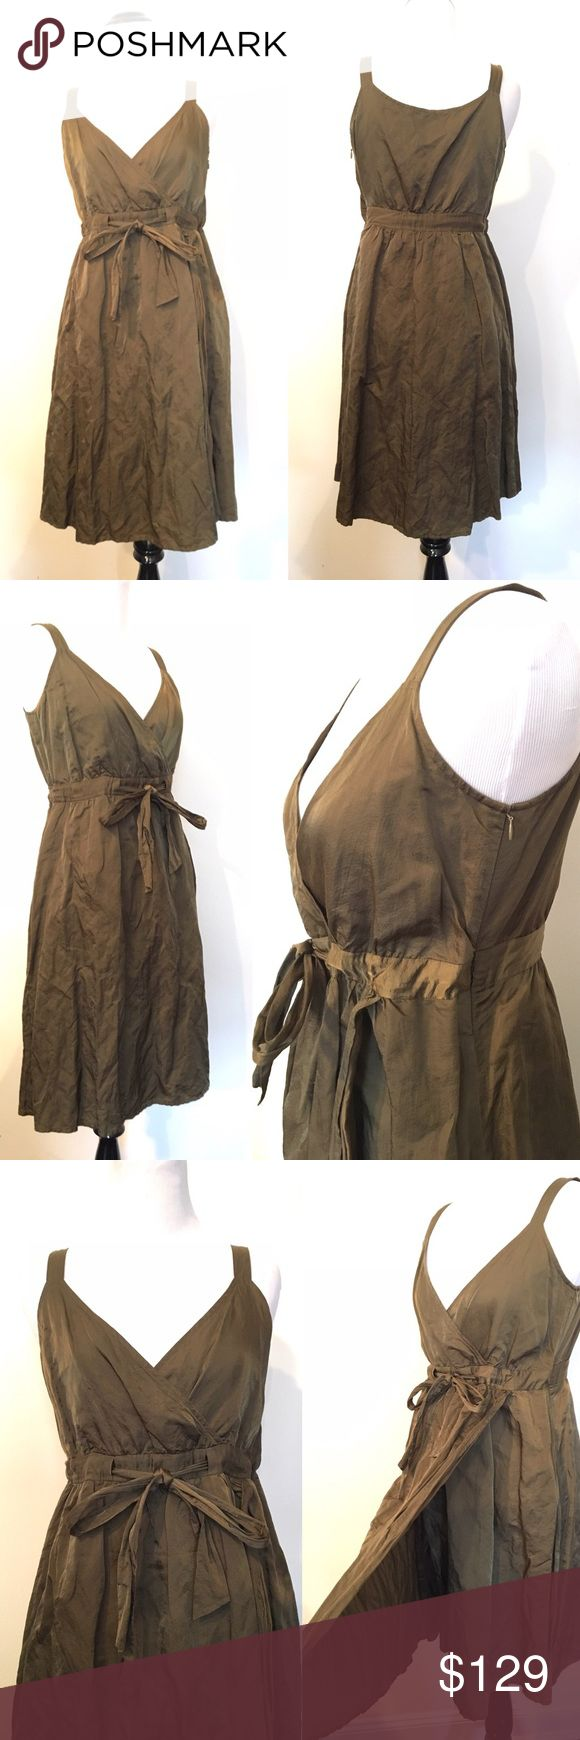 """Eileen Fisher 2P Petite olive Metallic Dress Gorgeous rich color right fabric imported from  Italy . Lined dress  Faux wrap (no unwanted surprises here !)  V neck  Tie around the waist area  Side zip   Pit to pit : 17.5""""  Waist at tie: 15""""  Collar to hem: 31""""  Any questions please ask Eileen Fisher Dresses Midi"""